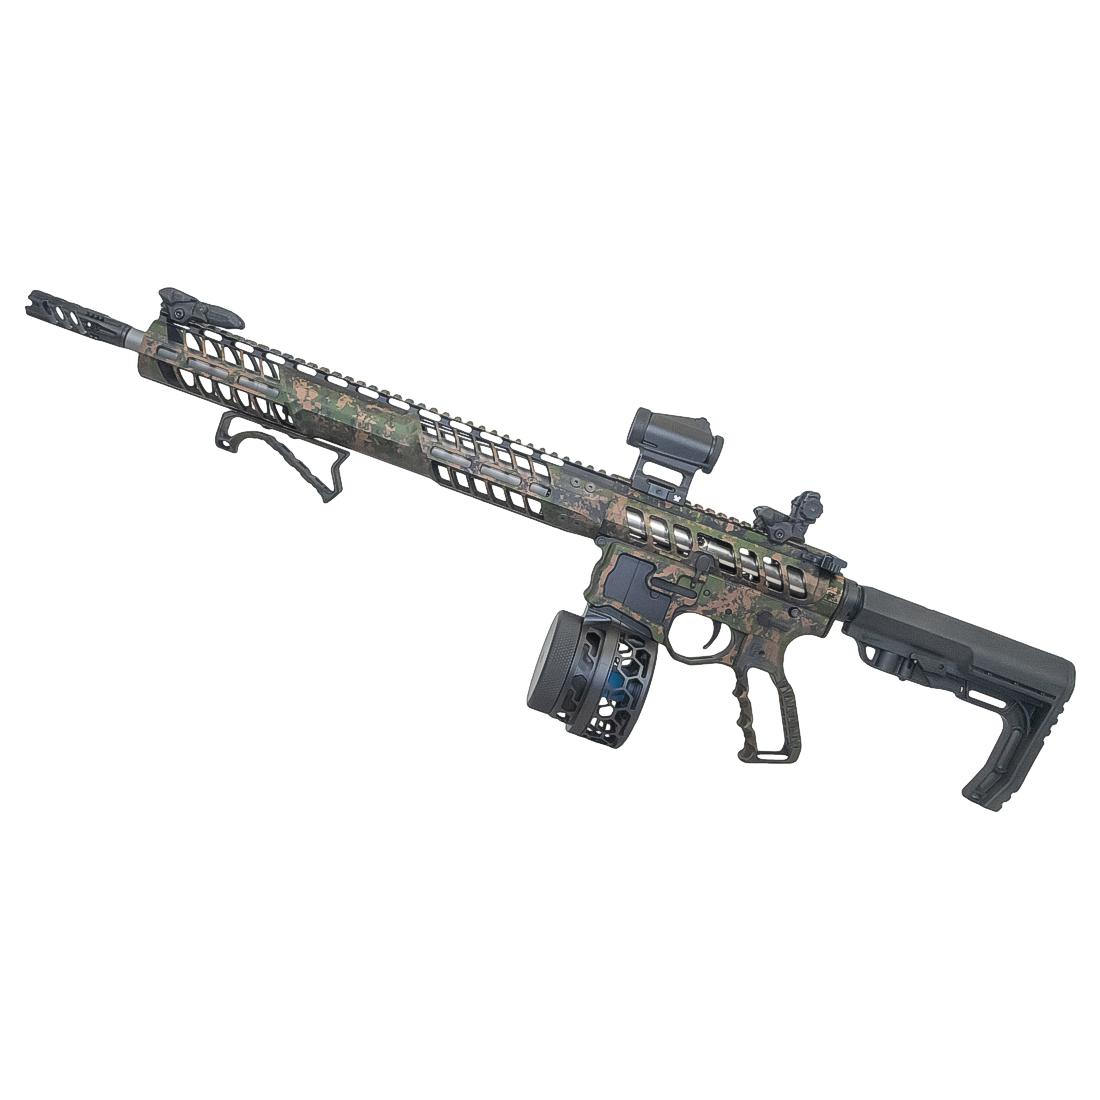 F1 Udr 15 Style 2 Forester 3 Gun Competition Rifle Tss Exclusive Texas Shooter S Supply